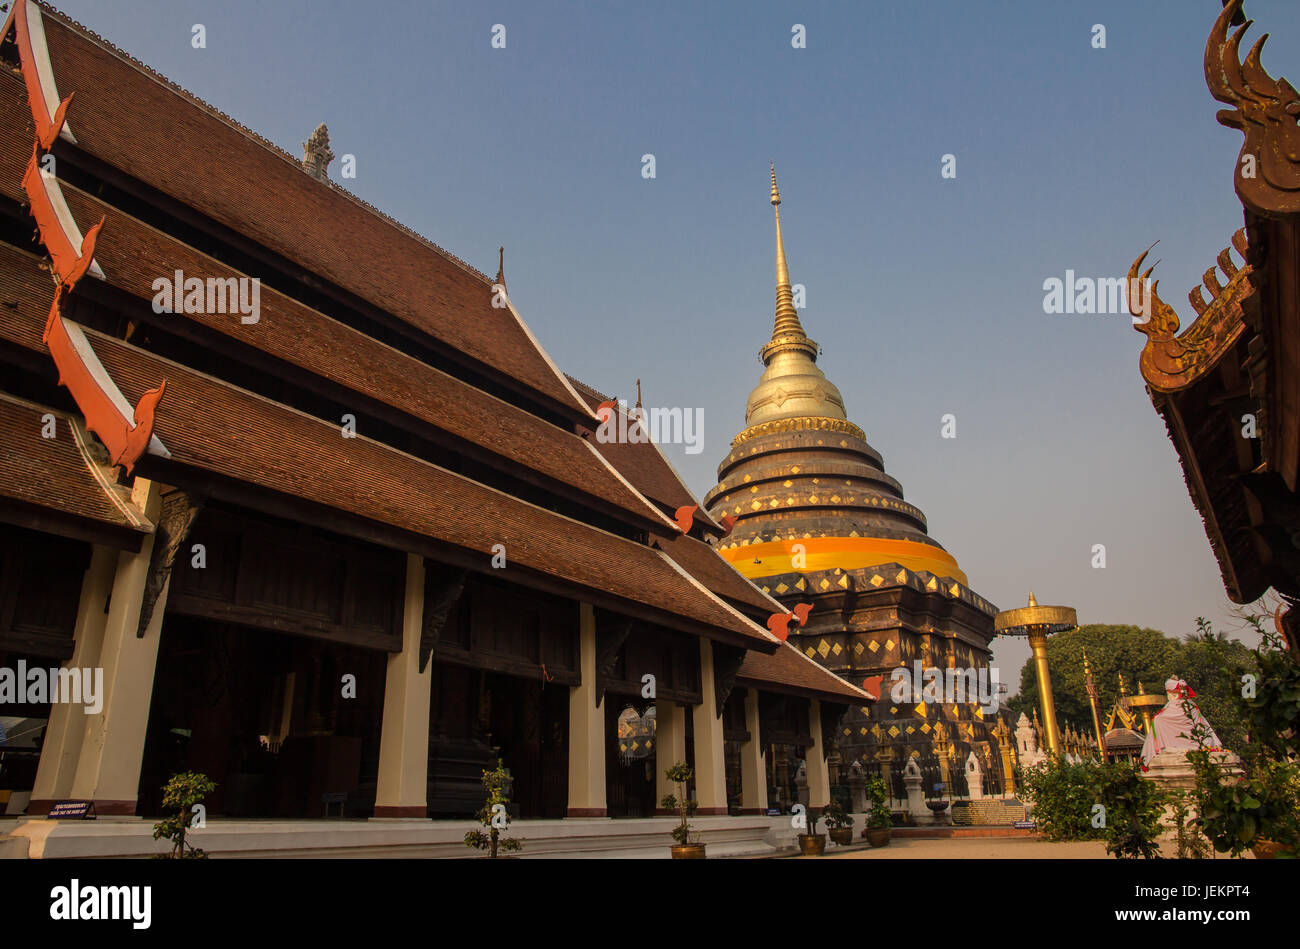 Wat Phra That Lampang Luang. Lanna architecture style temple - Stock Image